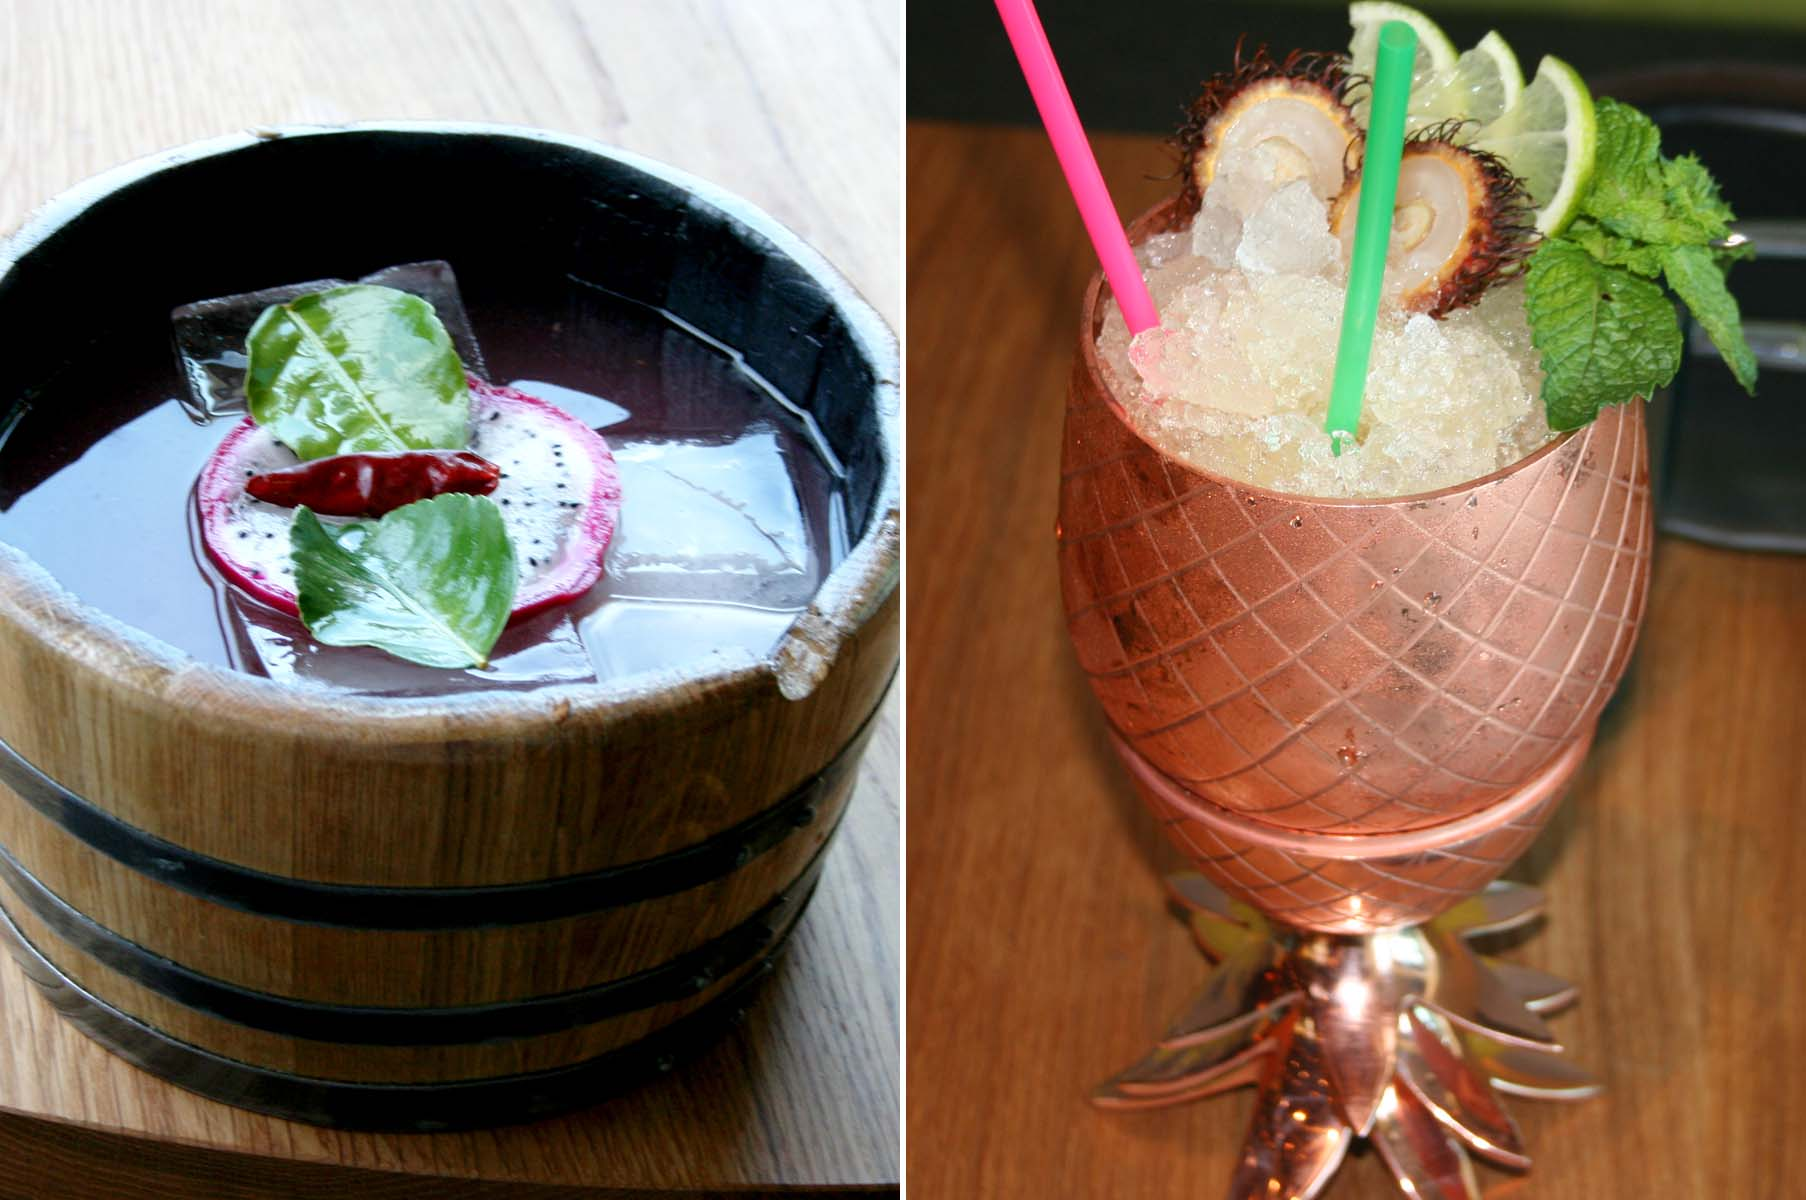 Drinks at the cocktail-centric Pepita include the Kentucky Hero (left) made with bourbon, black tea, peach orgeat and lemon; and the Lady Marmalade with cachaça, brandy, kumquart marmalade, ginger and tiki bitters. (Photos: Mark Heckathorn/DC on Heels)